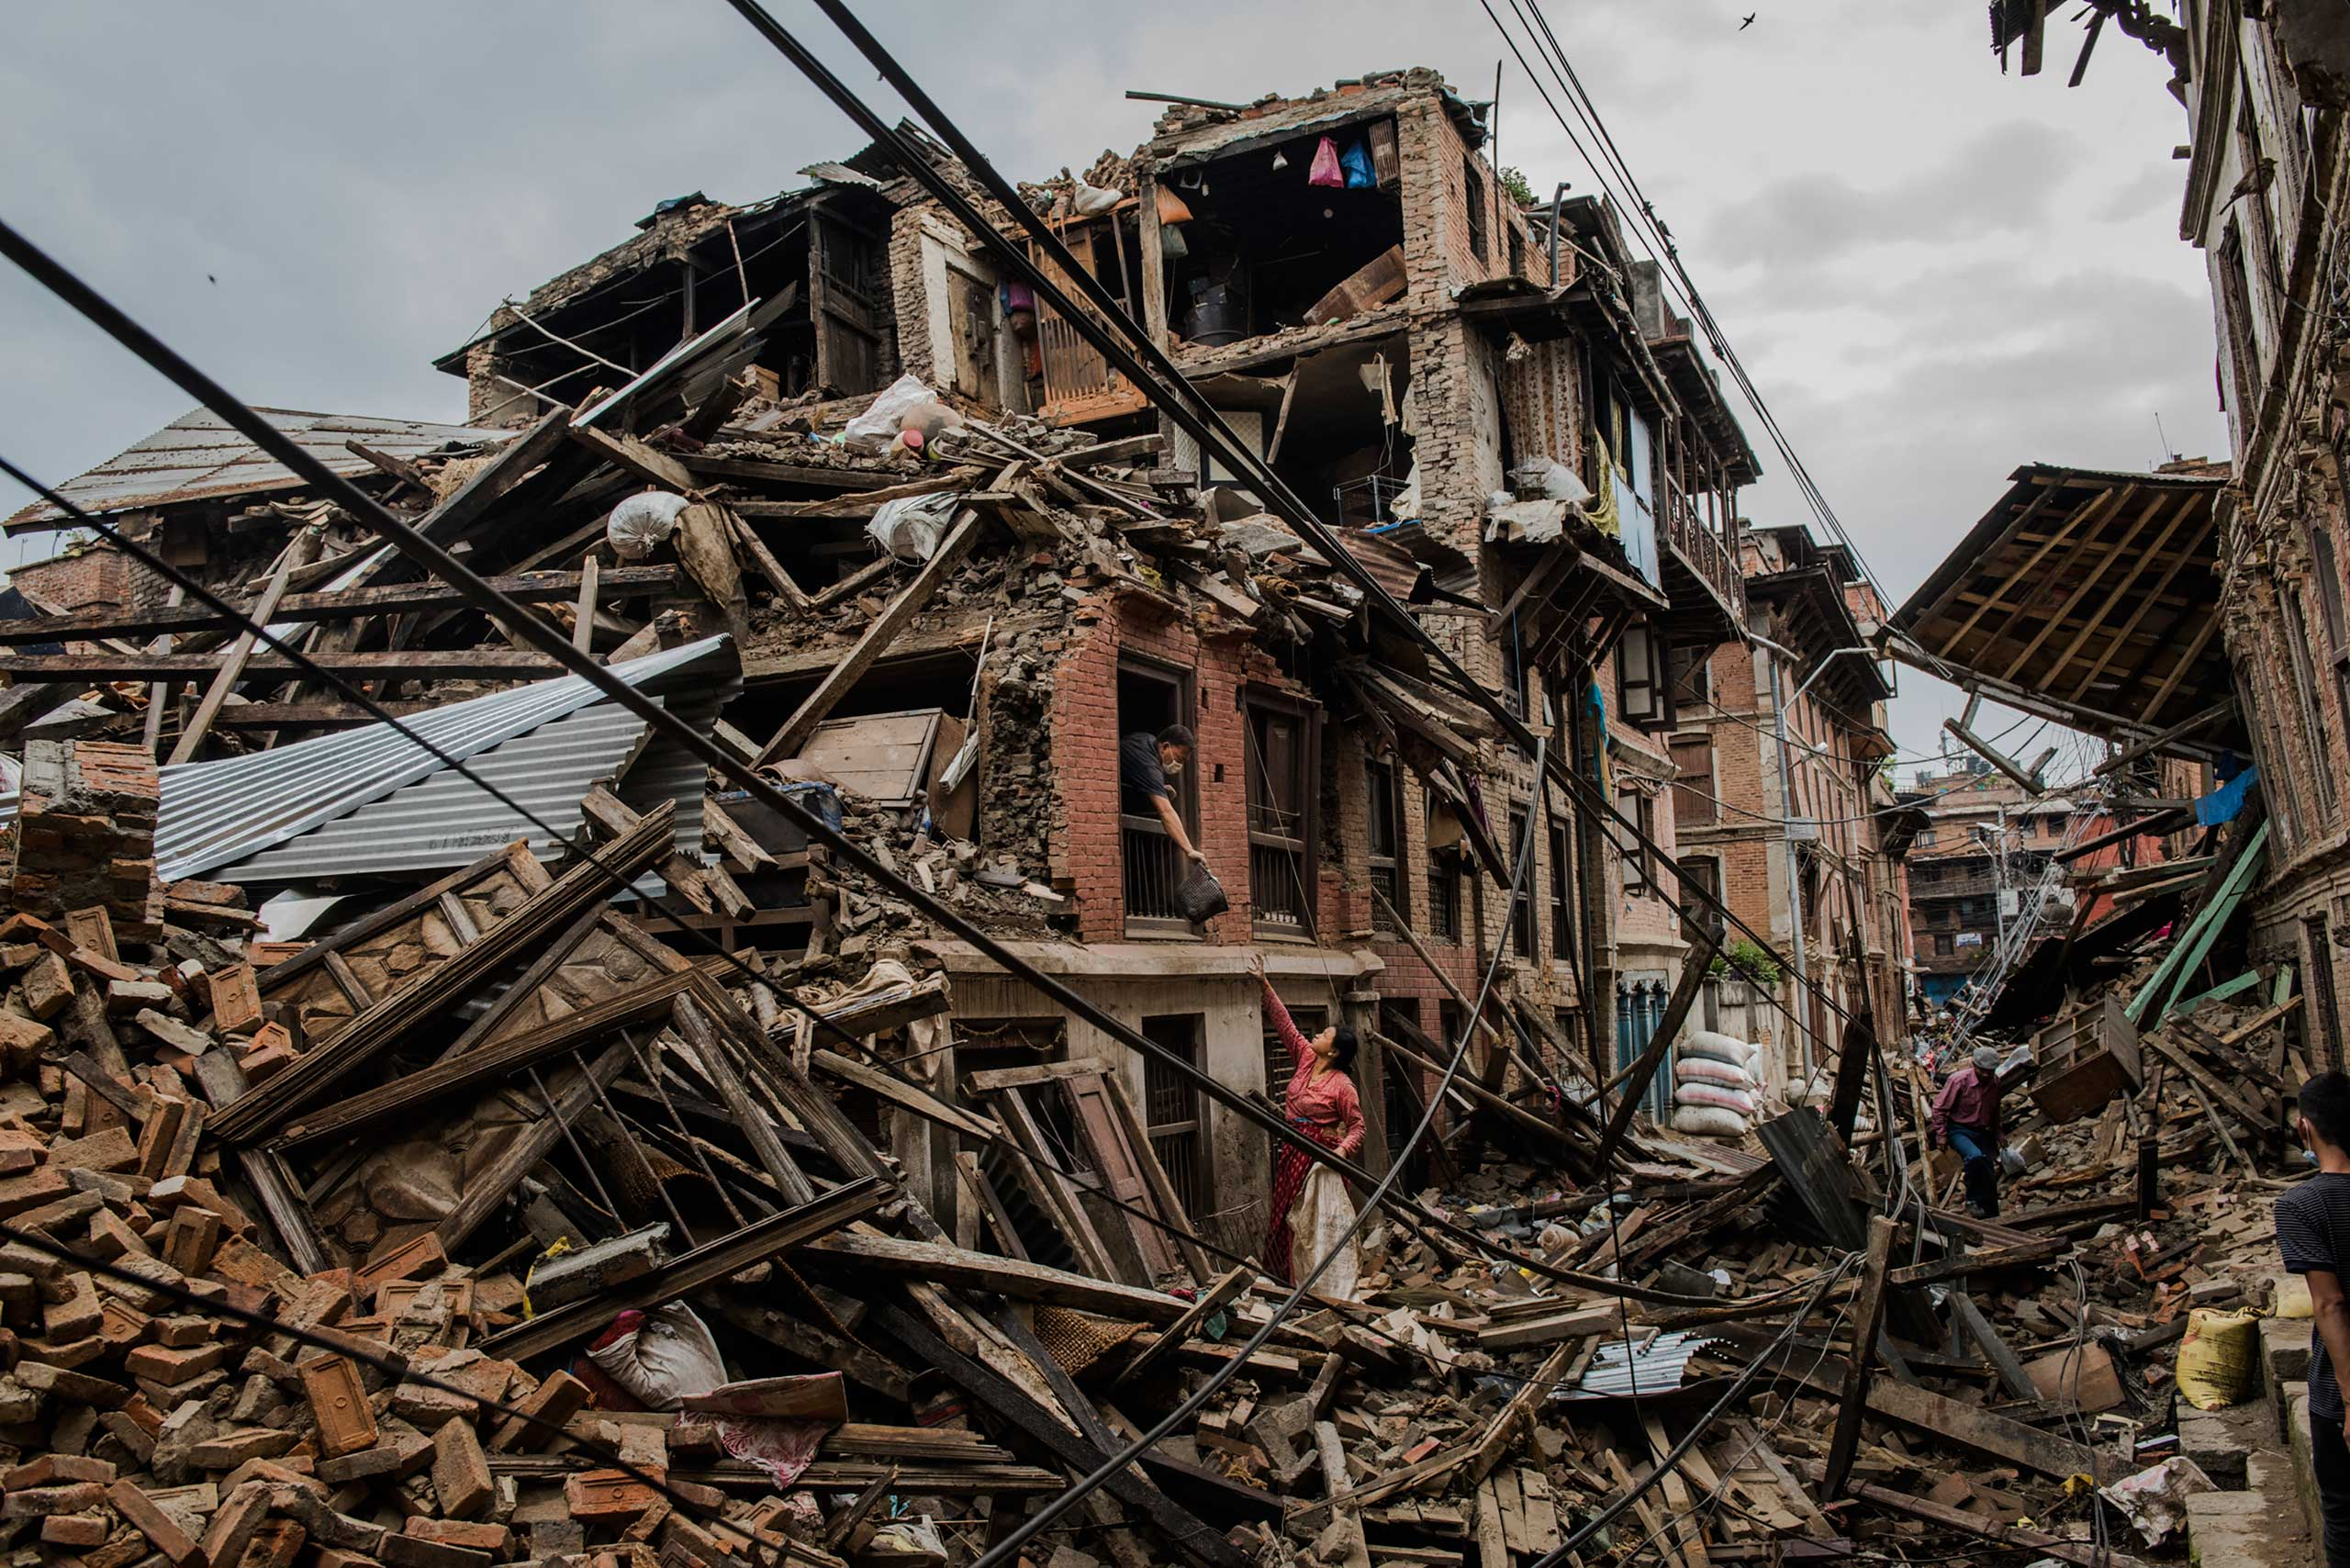 The New York Times Lens blog: Caught in Nepal's EarthquakesResidents recover personal belongings in the rubble of their destroyed home in Bhaktapur, Nepal, April 29, 2015.